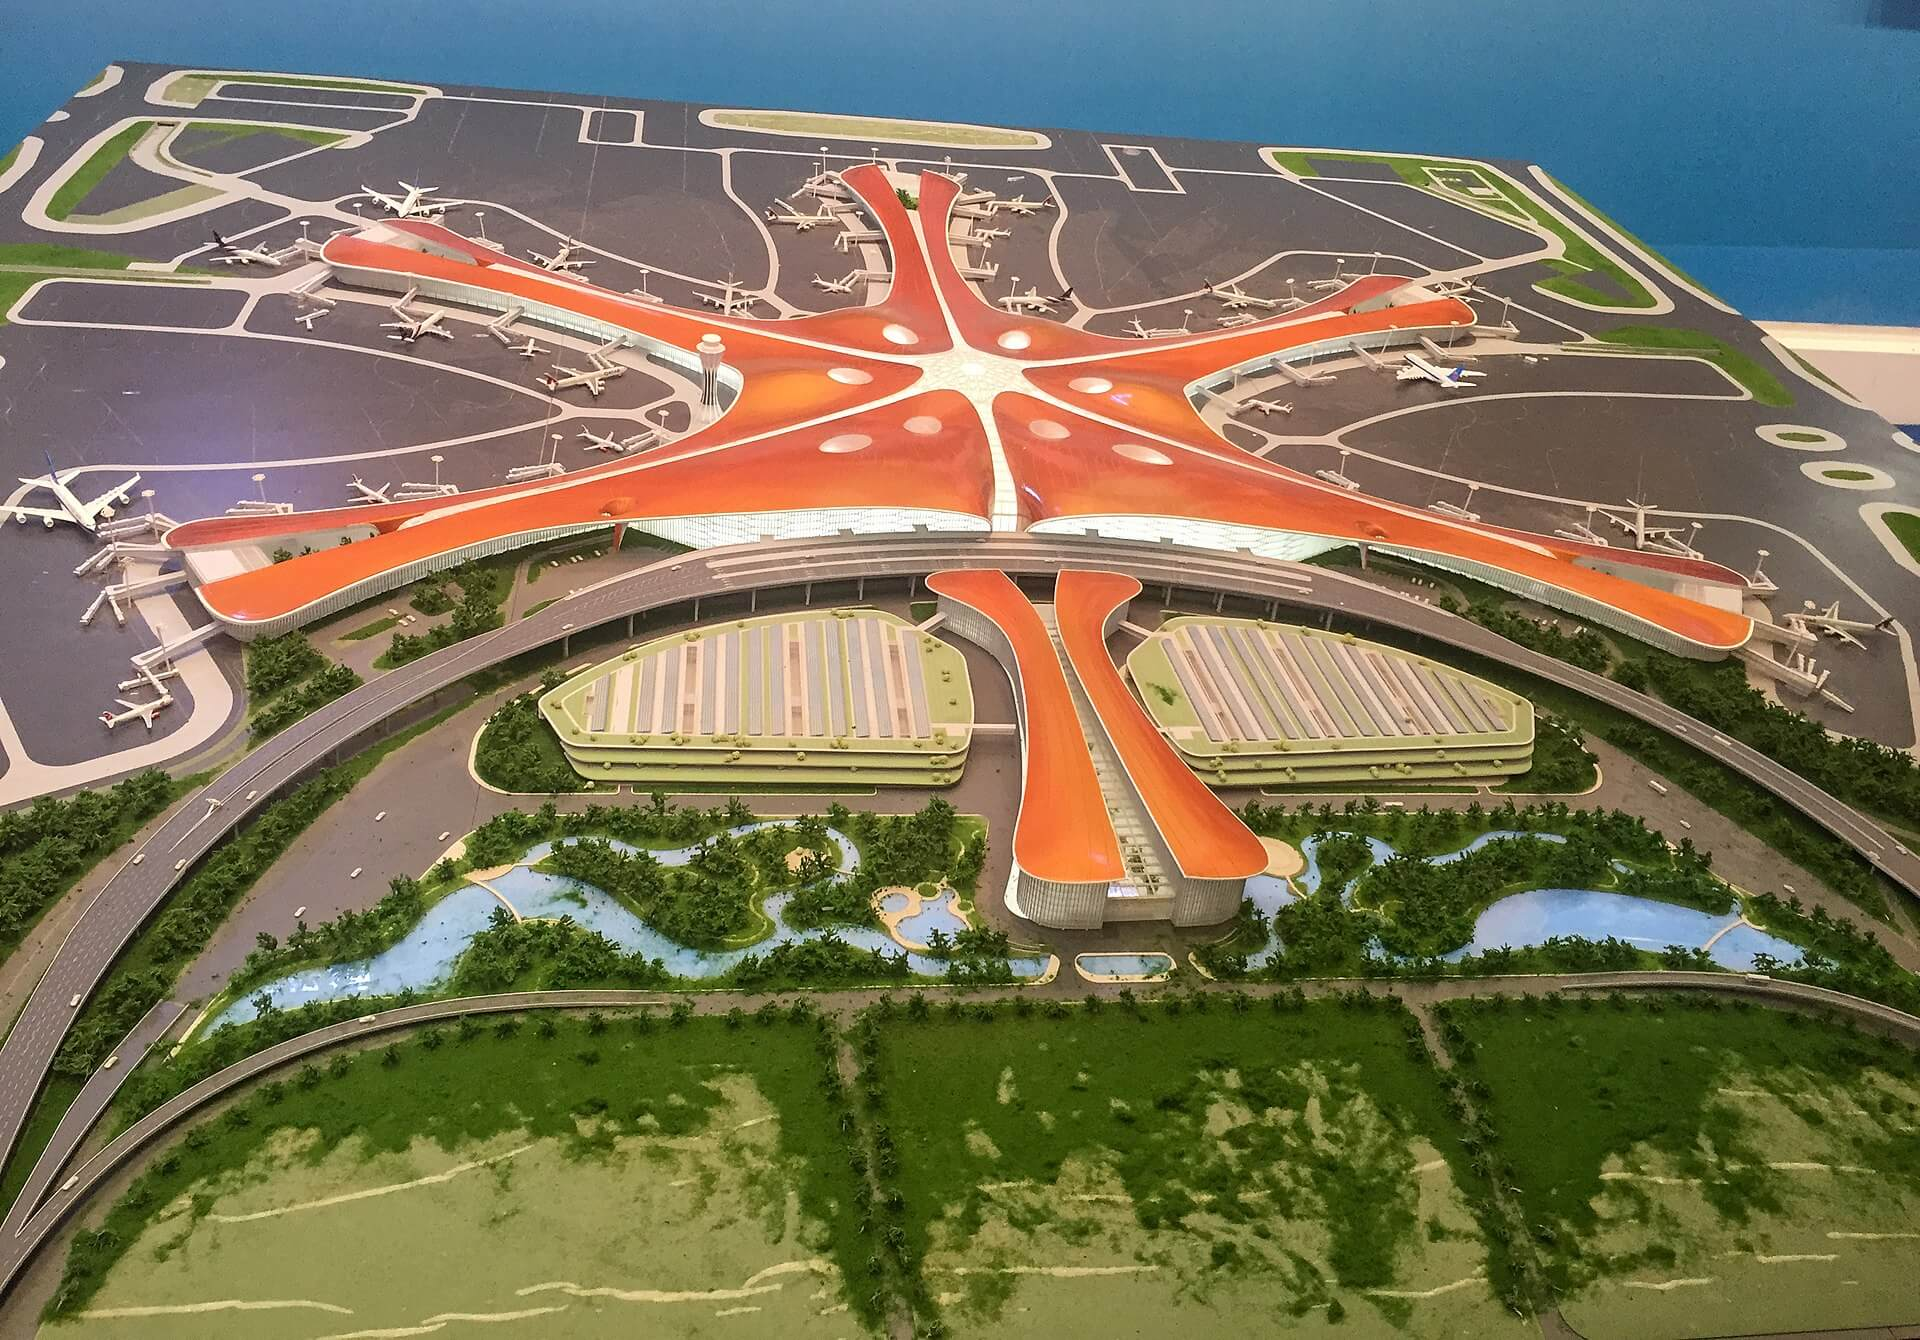 1920px-Model_of_Beijing_New_Airport_at_the_Fing-Year_Achievements_Exhibition_20171015150600